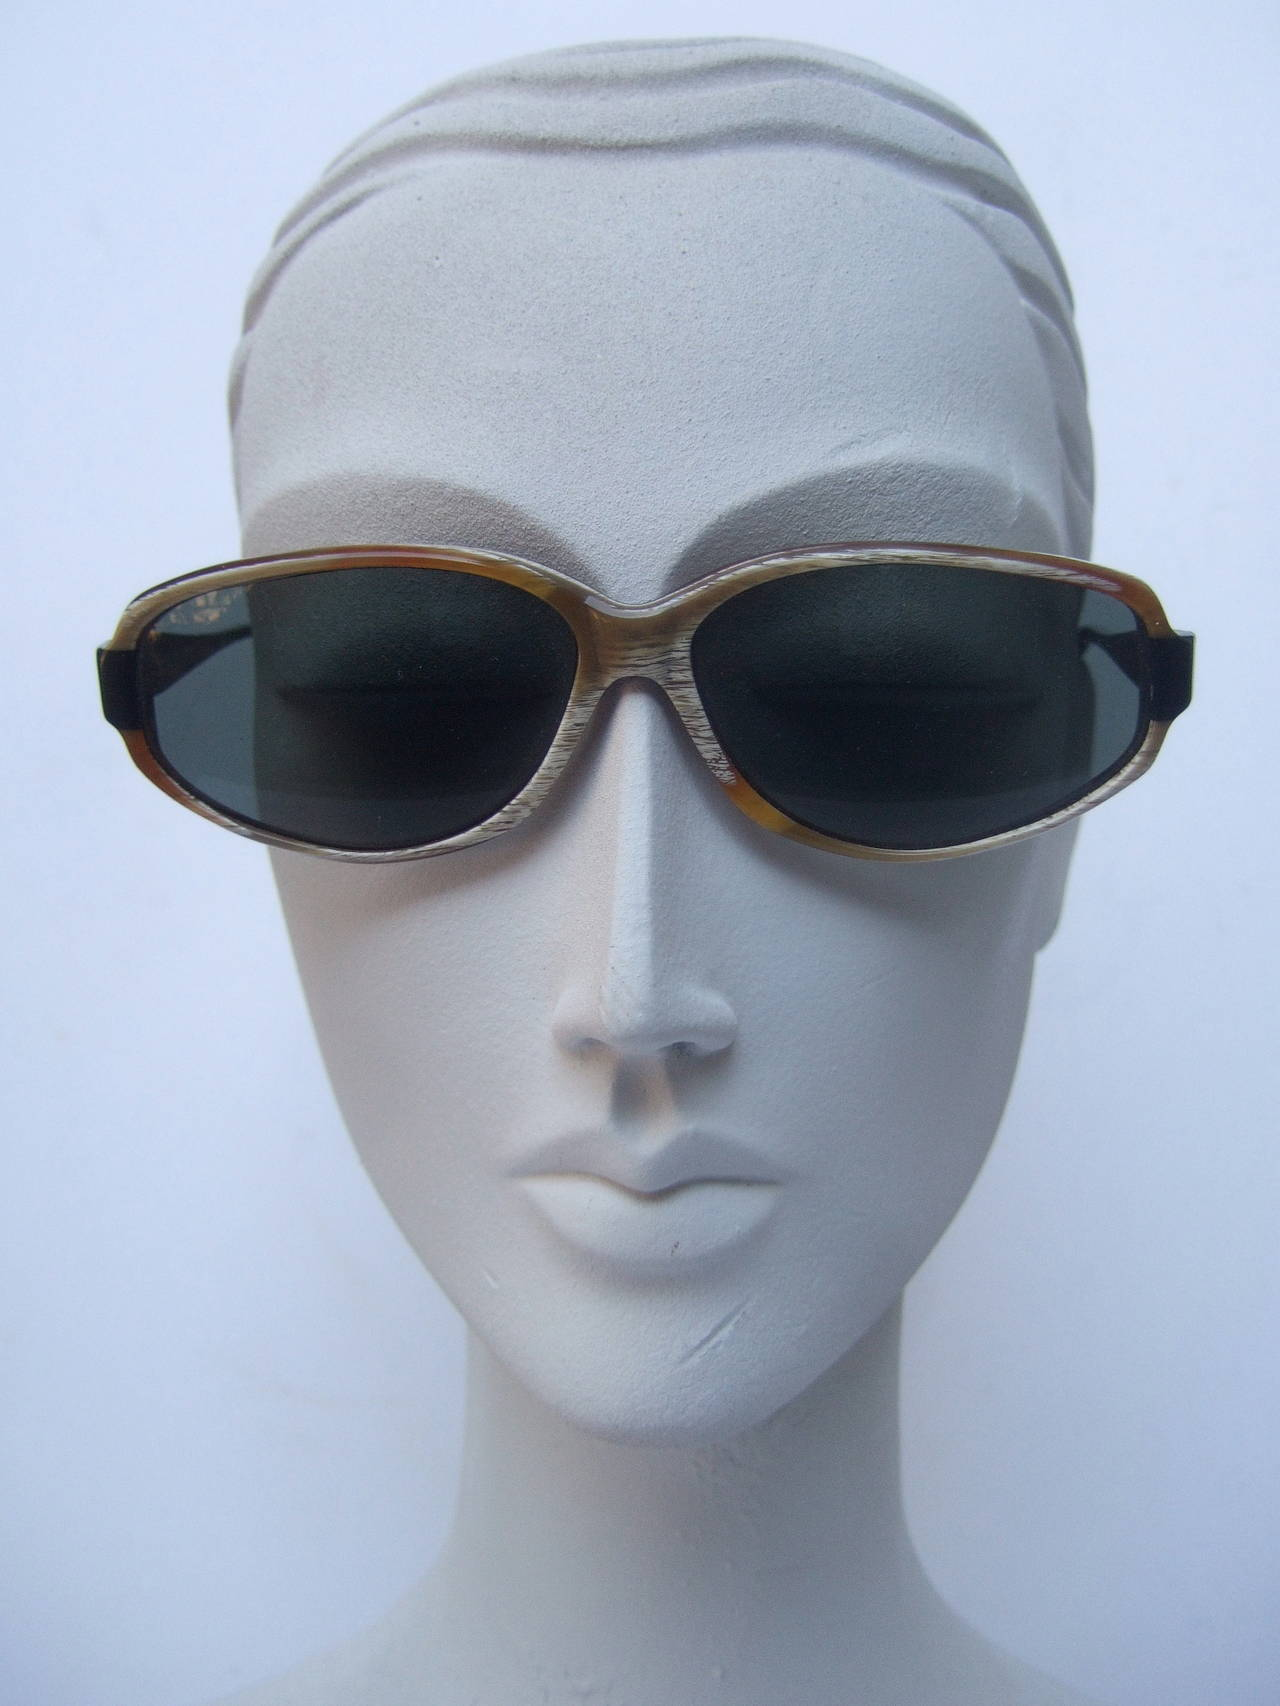 Women's Jean Patou Paris Stylish Sunglasses Made in France For Sale